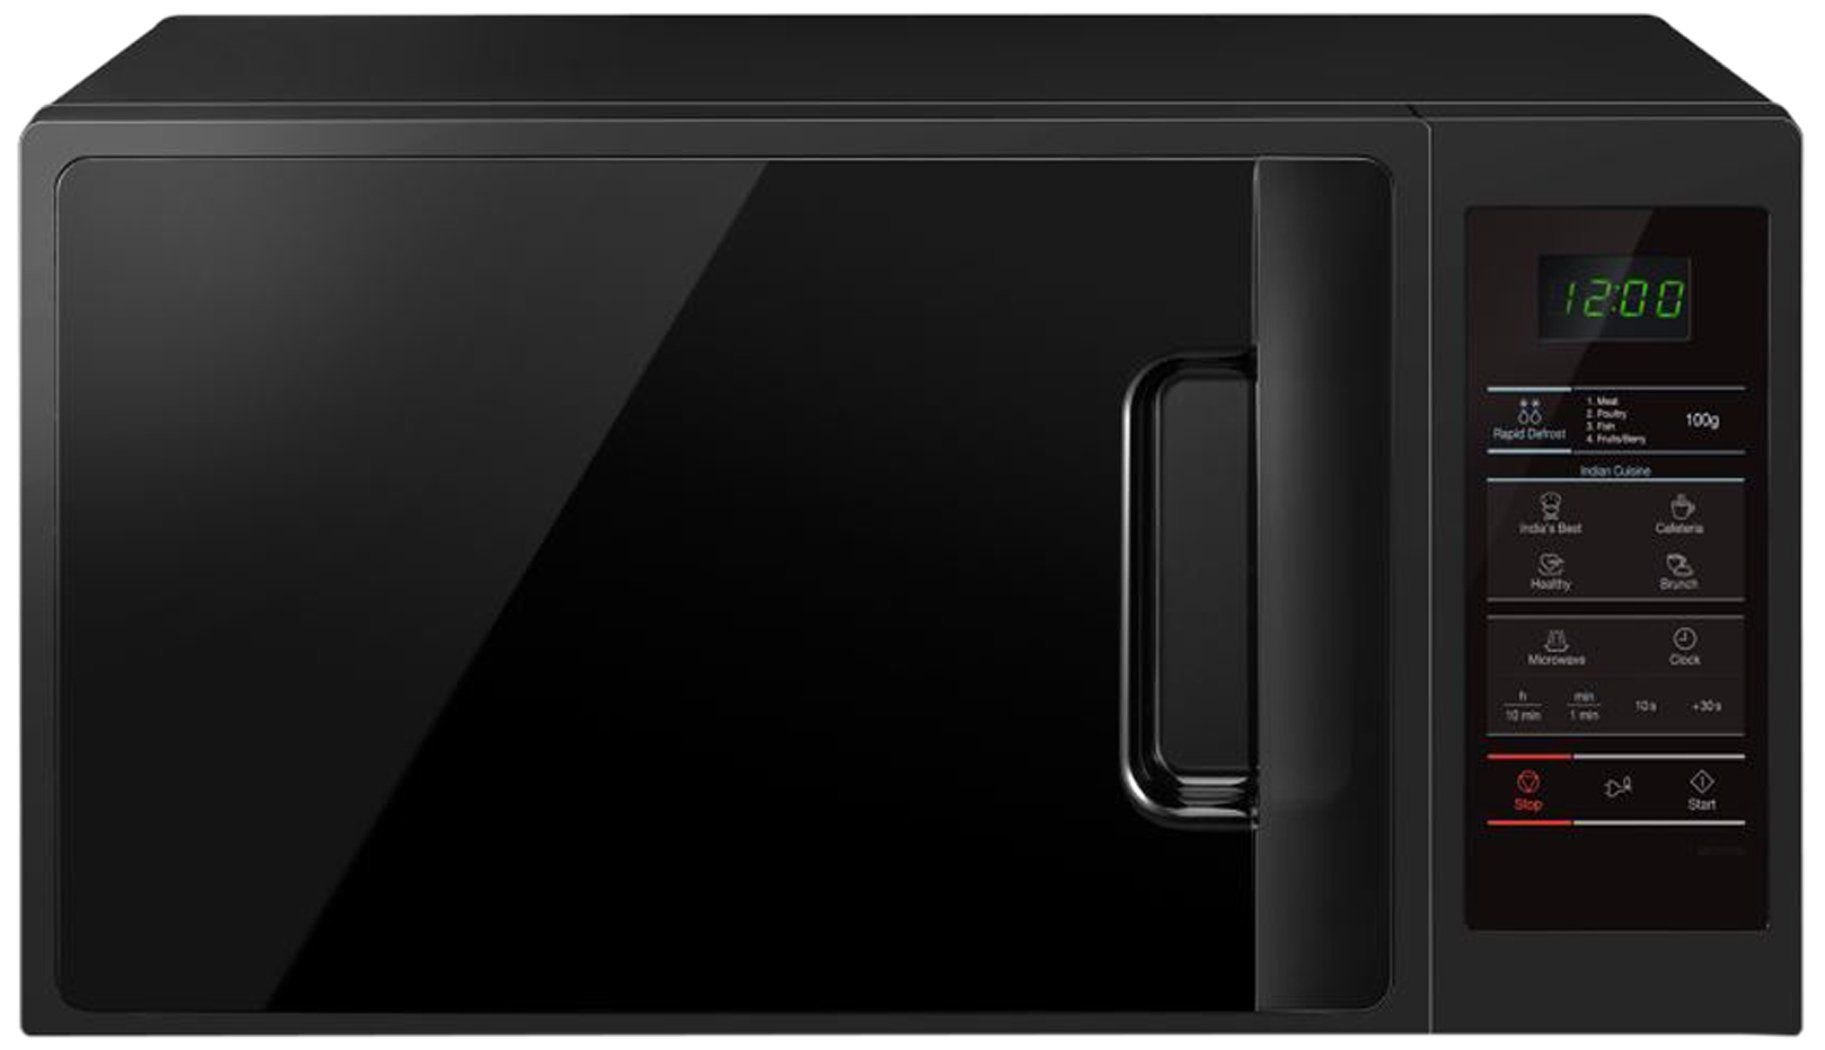 Buy Samsung Mw73ad B Xtl 20 Litre 800 Watt Solo Microwave Oven Online At Low Prices In India Amazon In Microwave Oven Microwave Oven Price